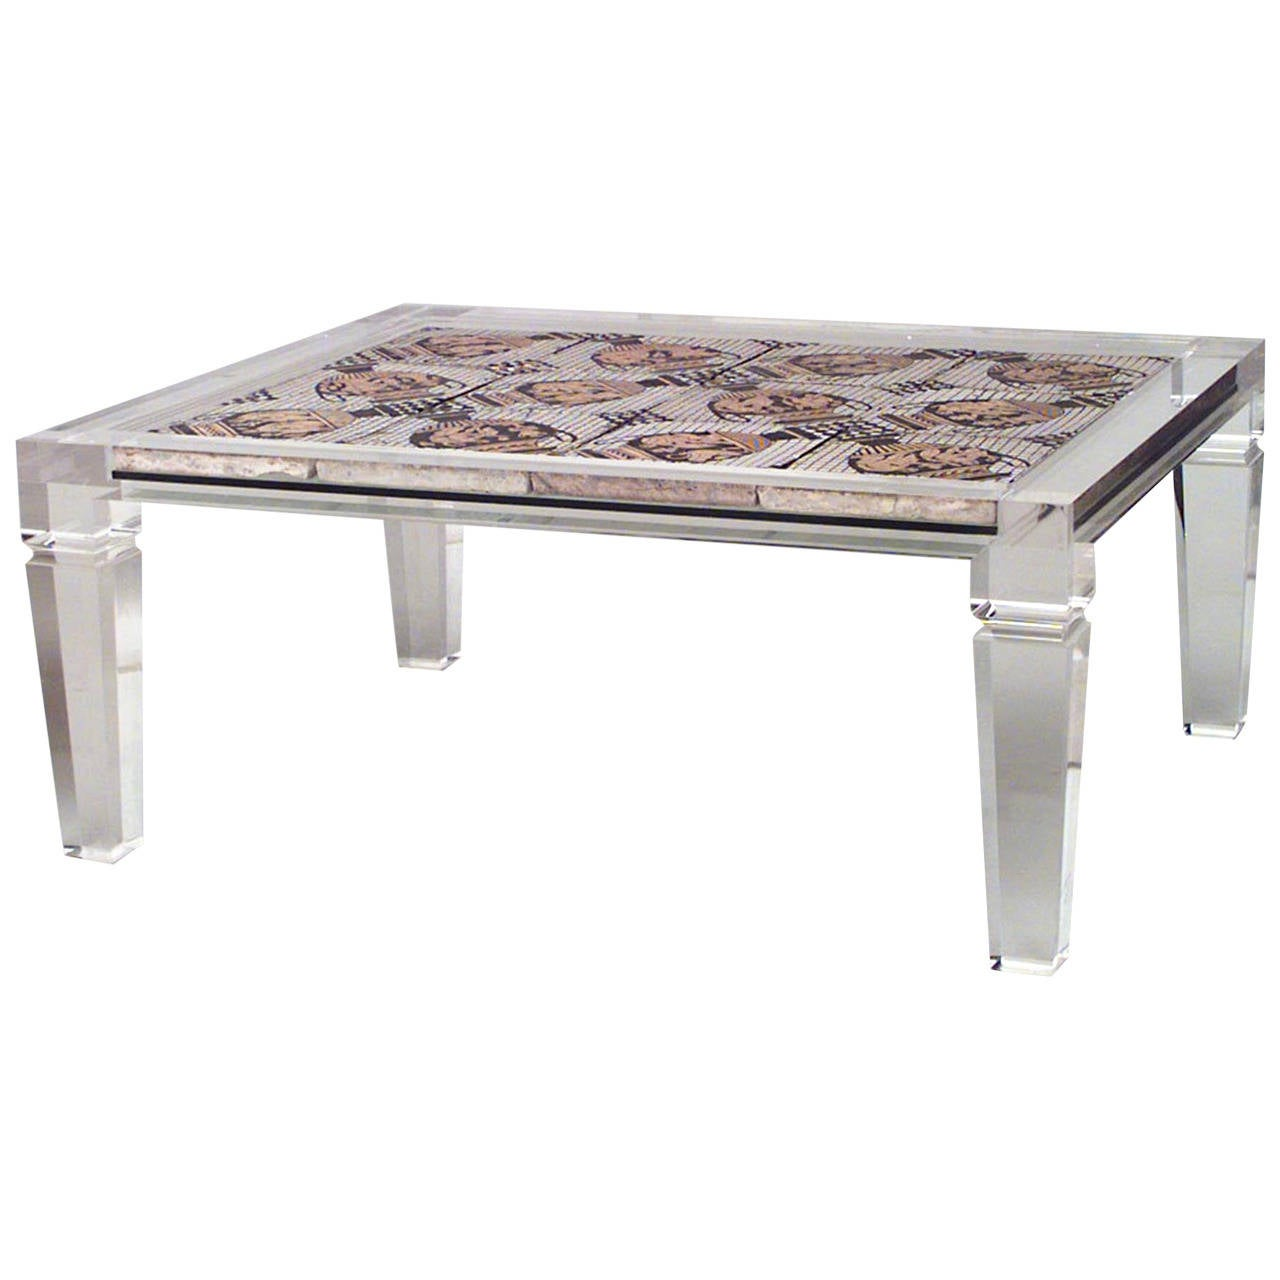 1940s French Mosaic And Lucite Coffee Table Attributed To Maison Jansen For Sale At 1stdibs